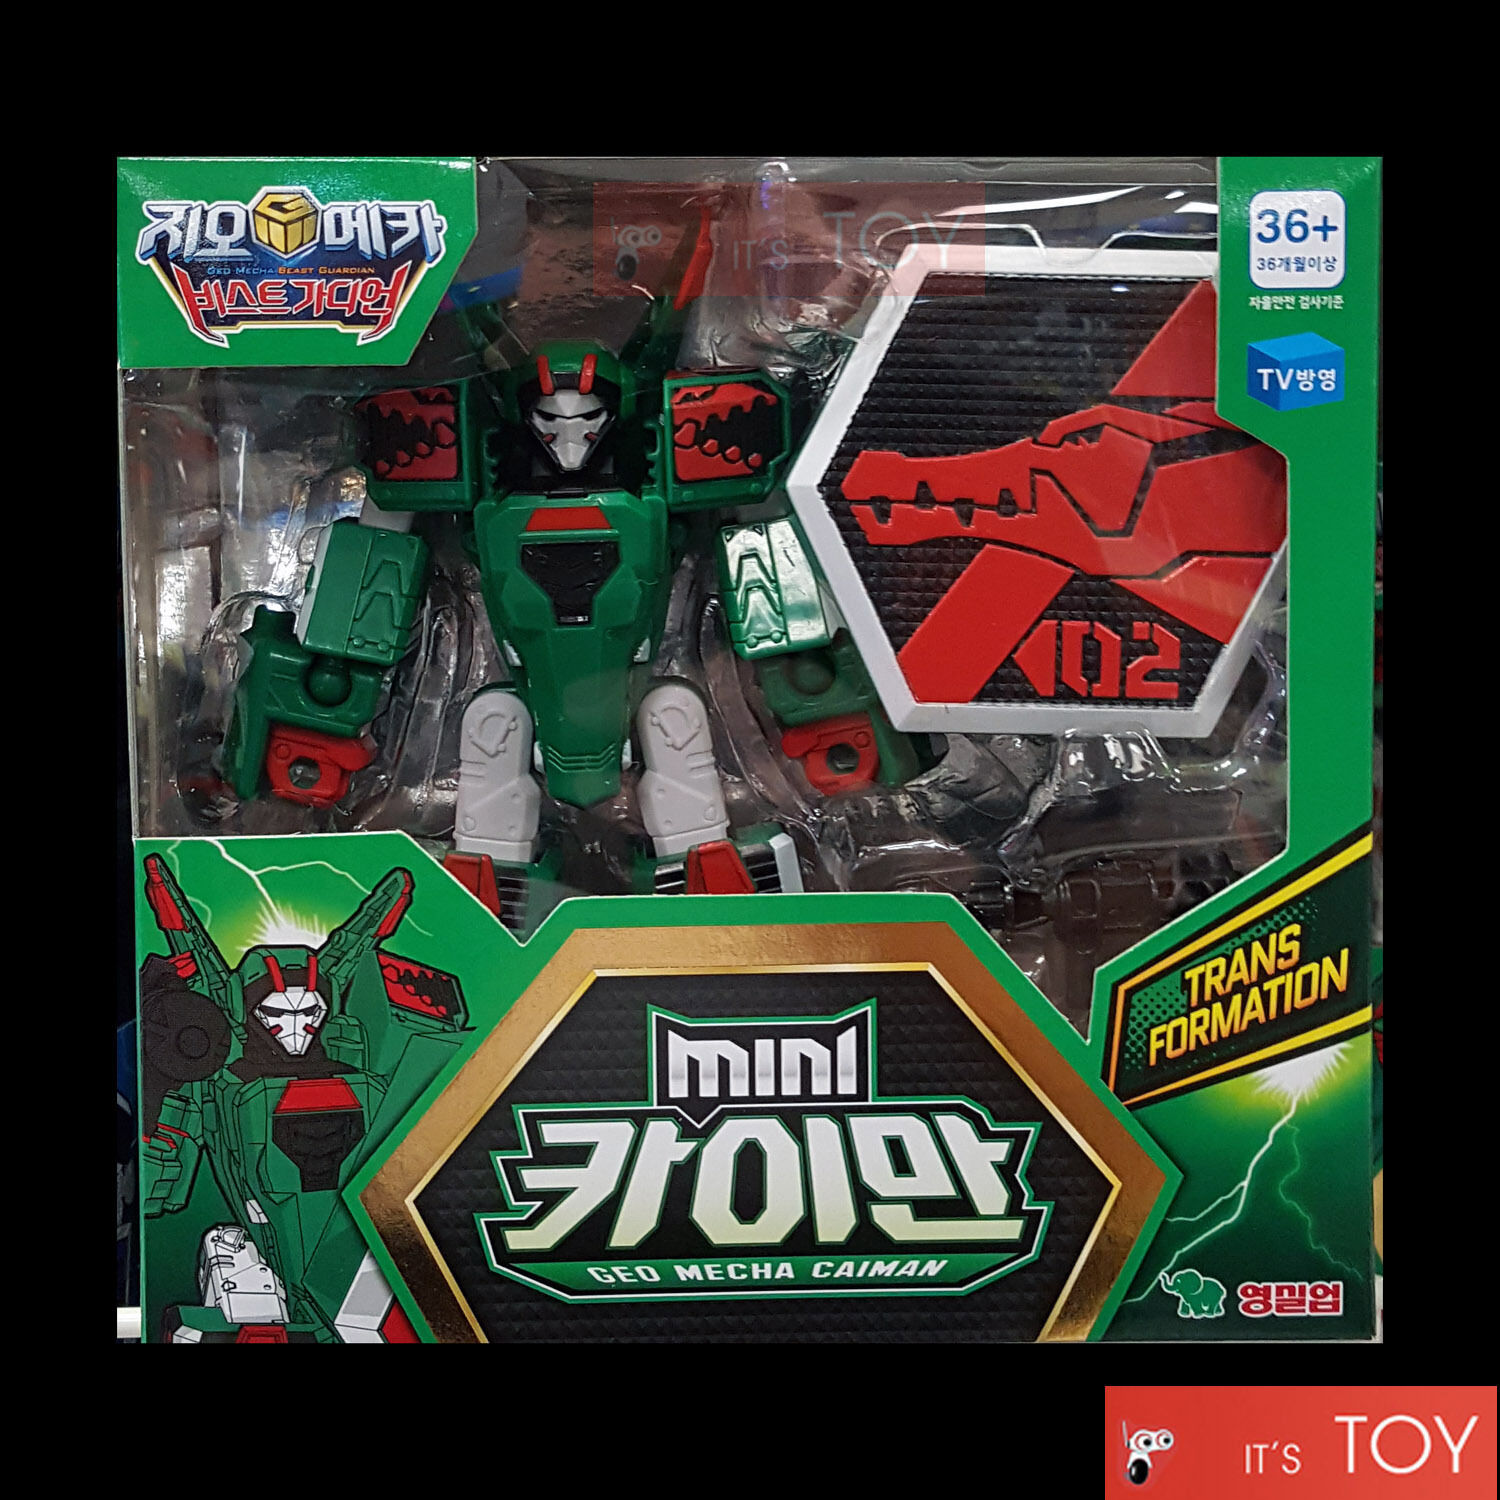 Geo Mecha Beast Guardian MINI CAIMAN 02 Green Alligator